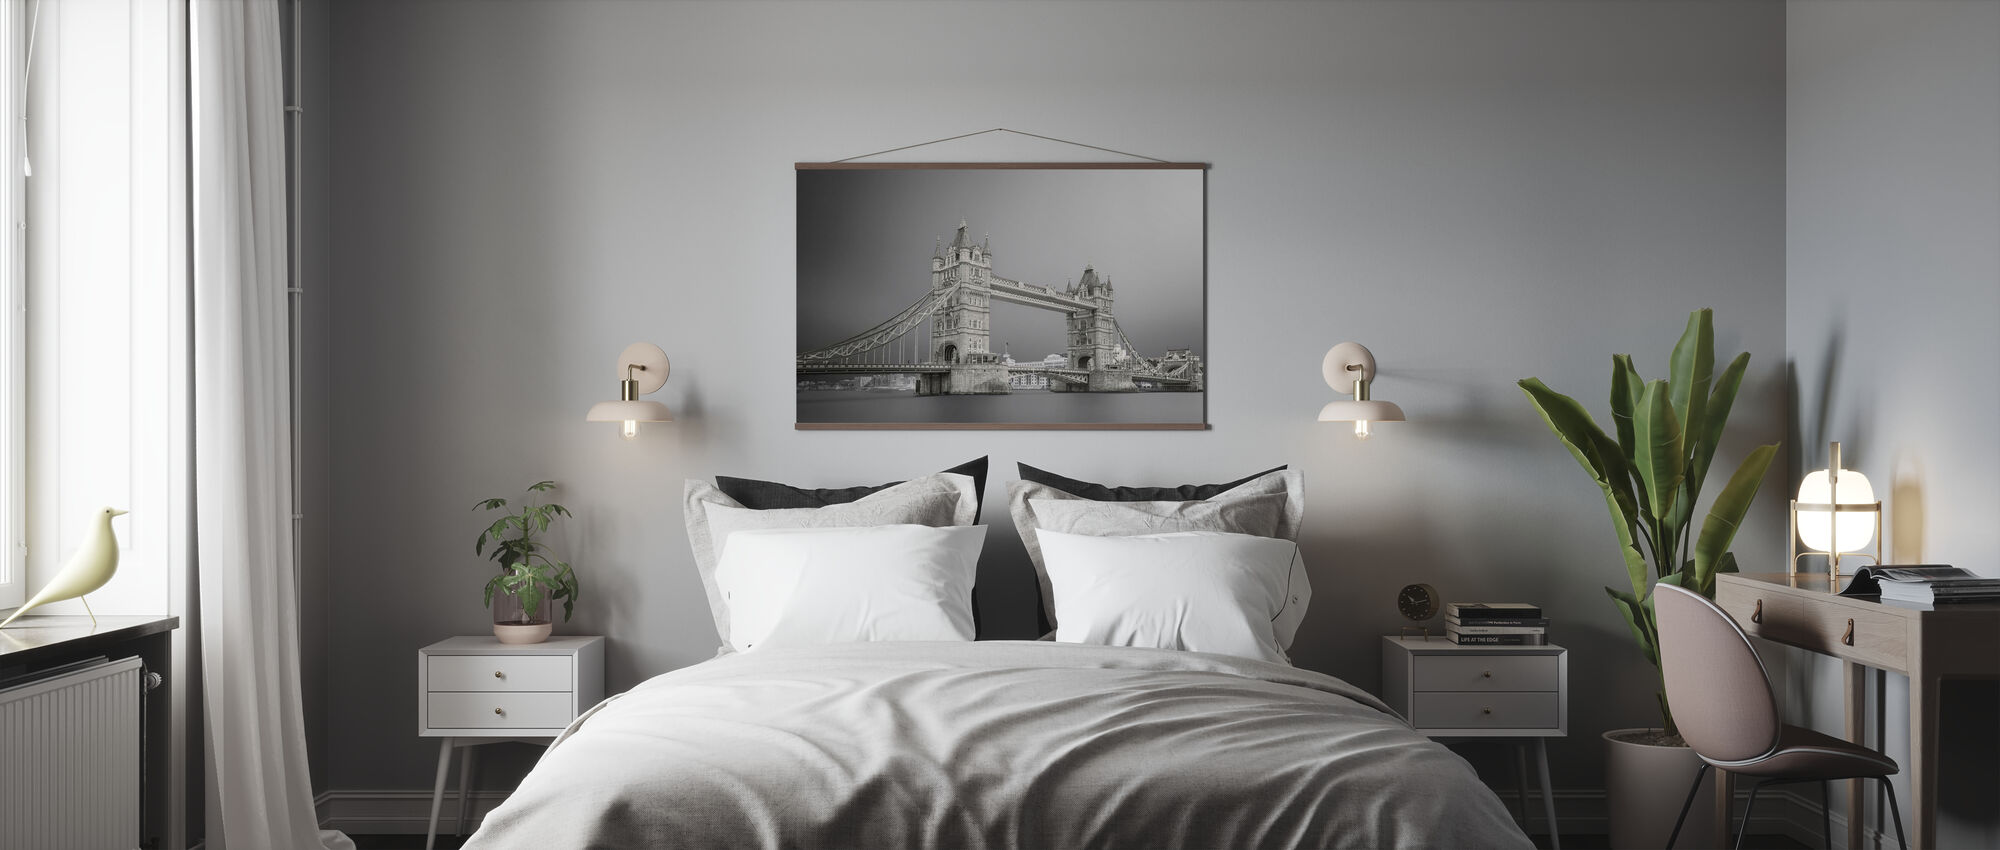 Grey Tower Bridge - Poster - Bedroom